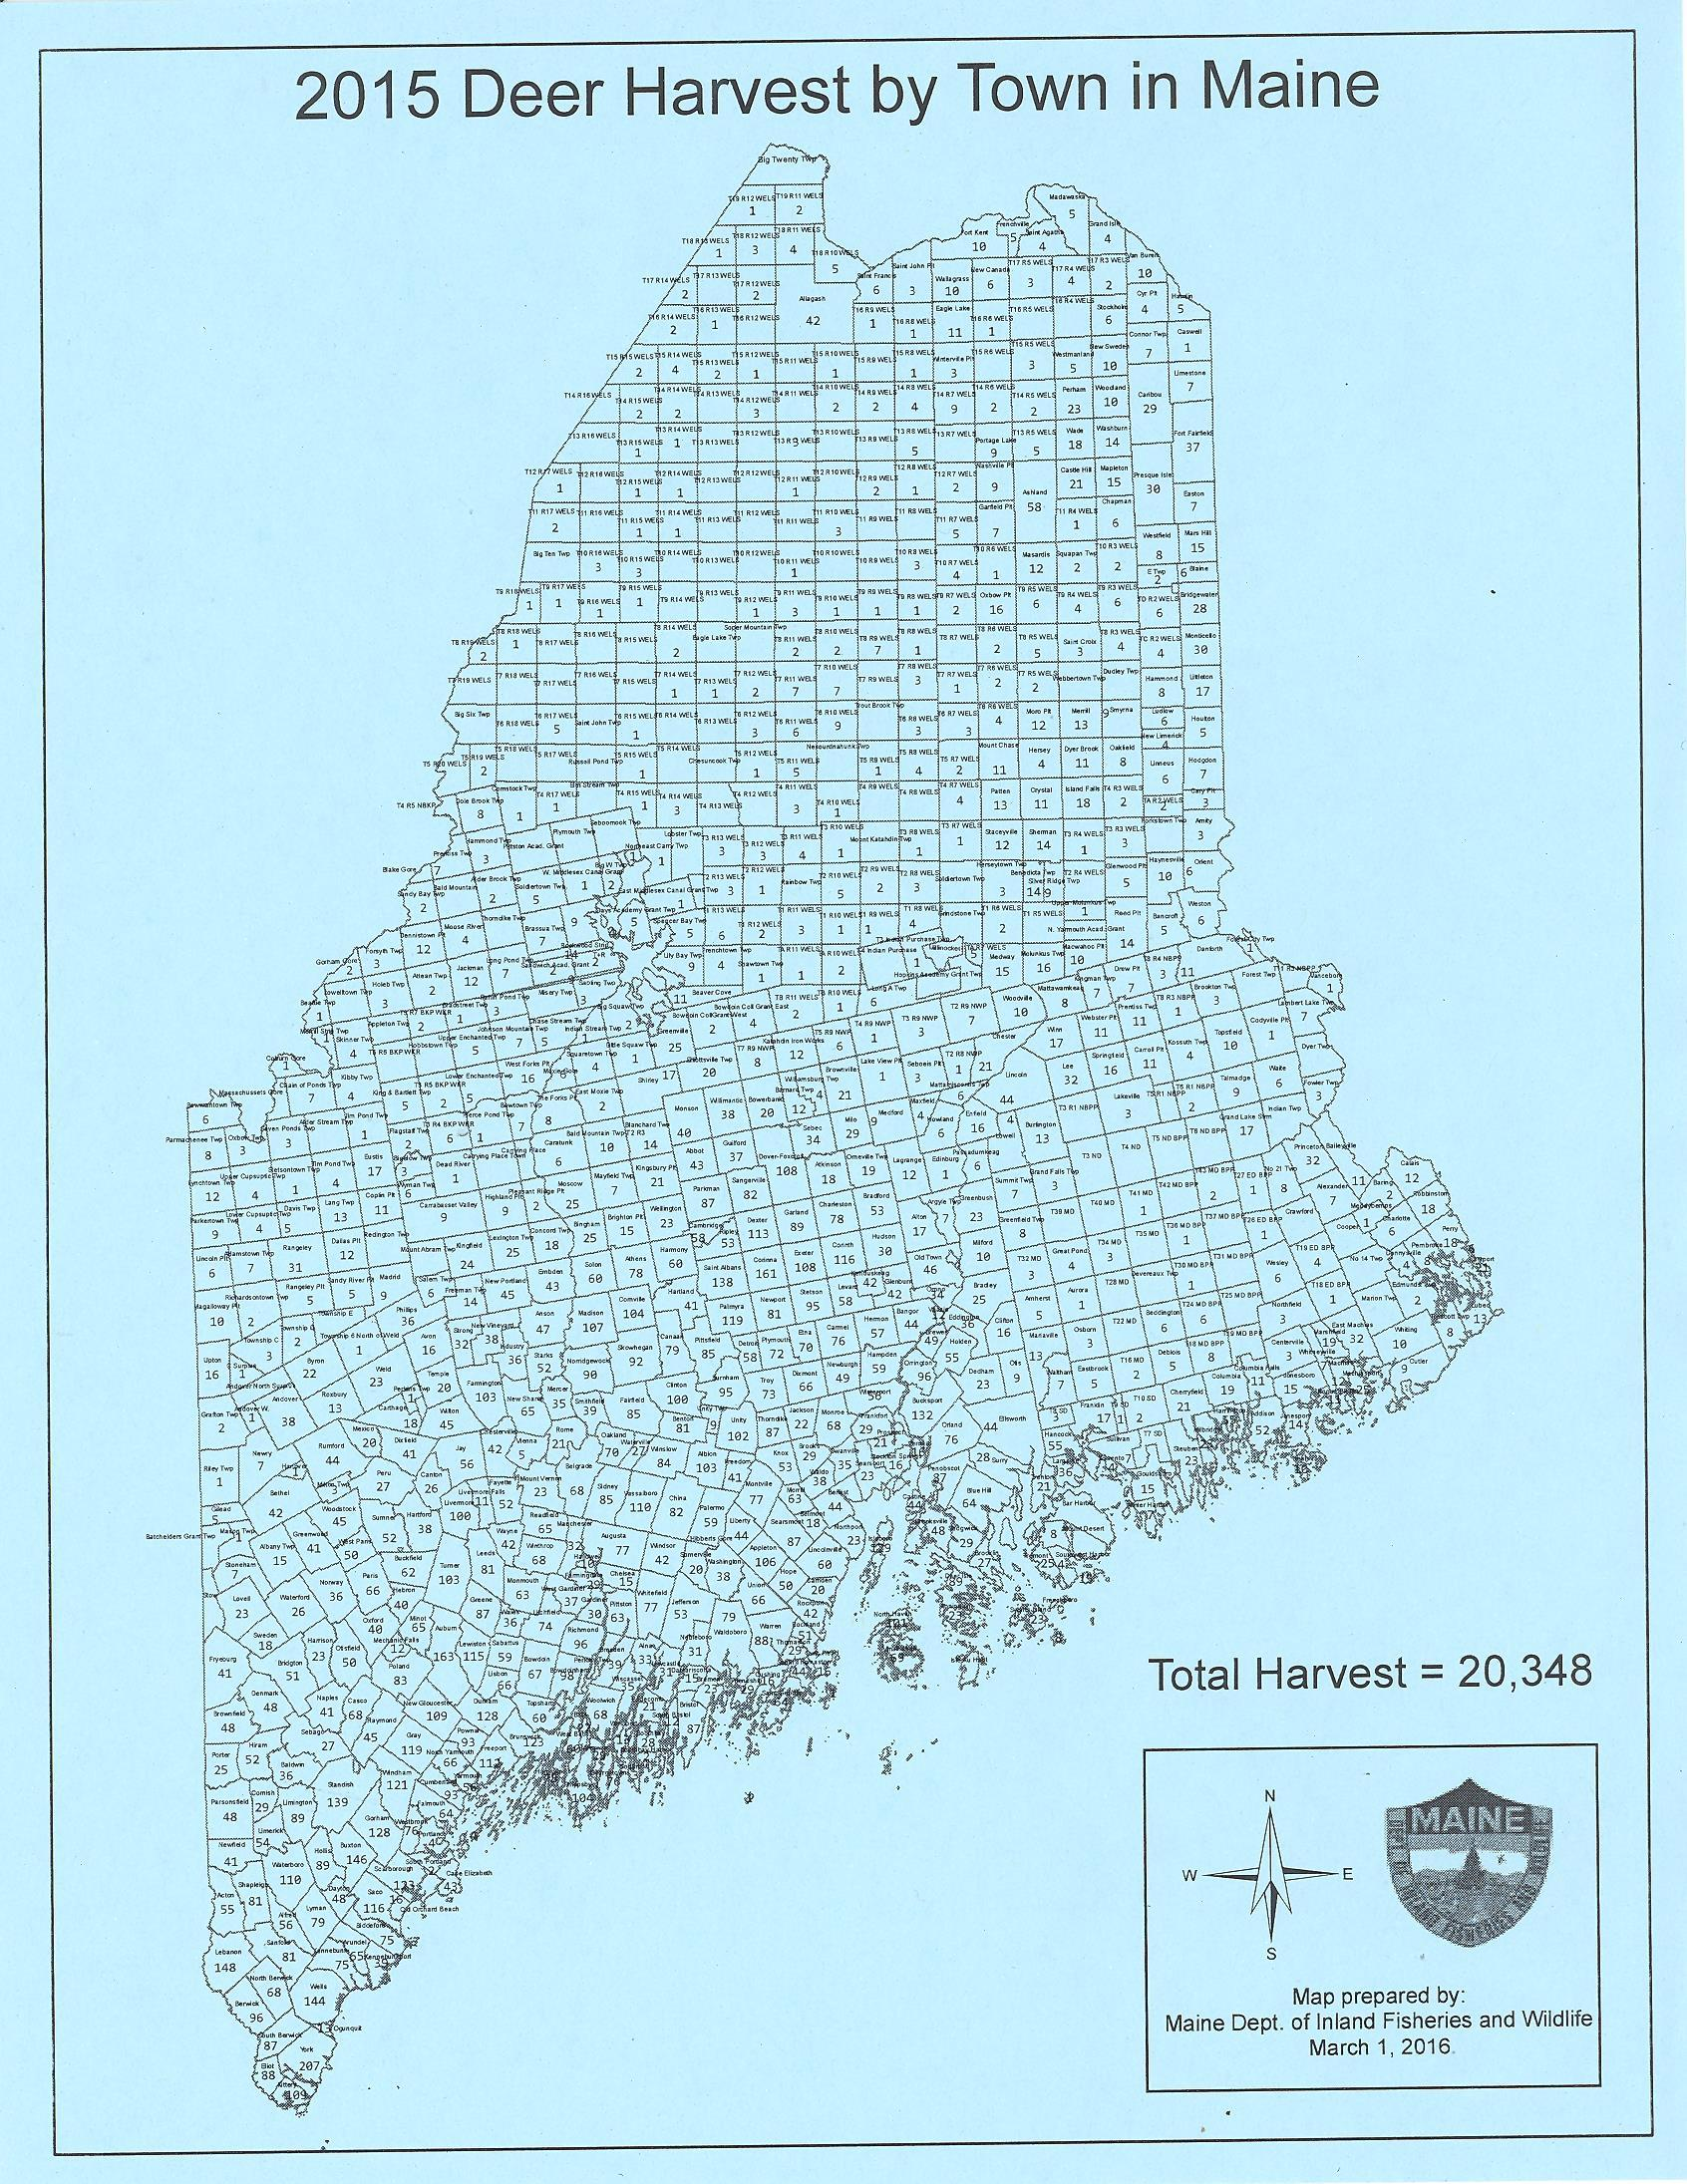 maine deer population map Maine Deer Harvest Dismal Why Are Sportsmen Happy With Management maine deer population map